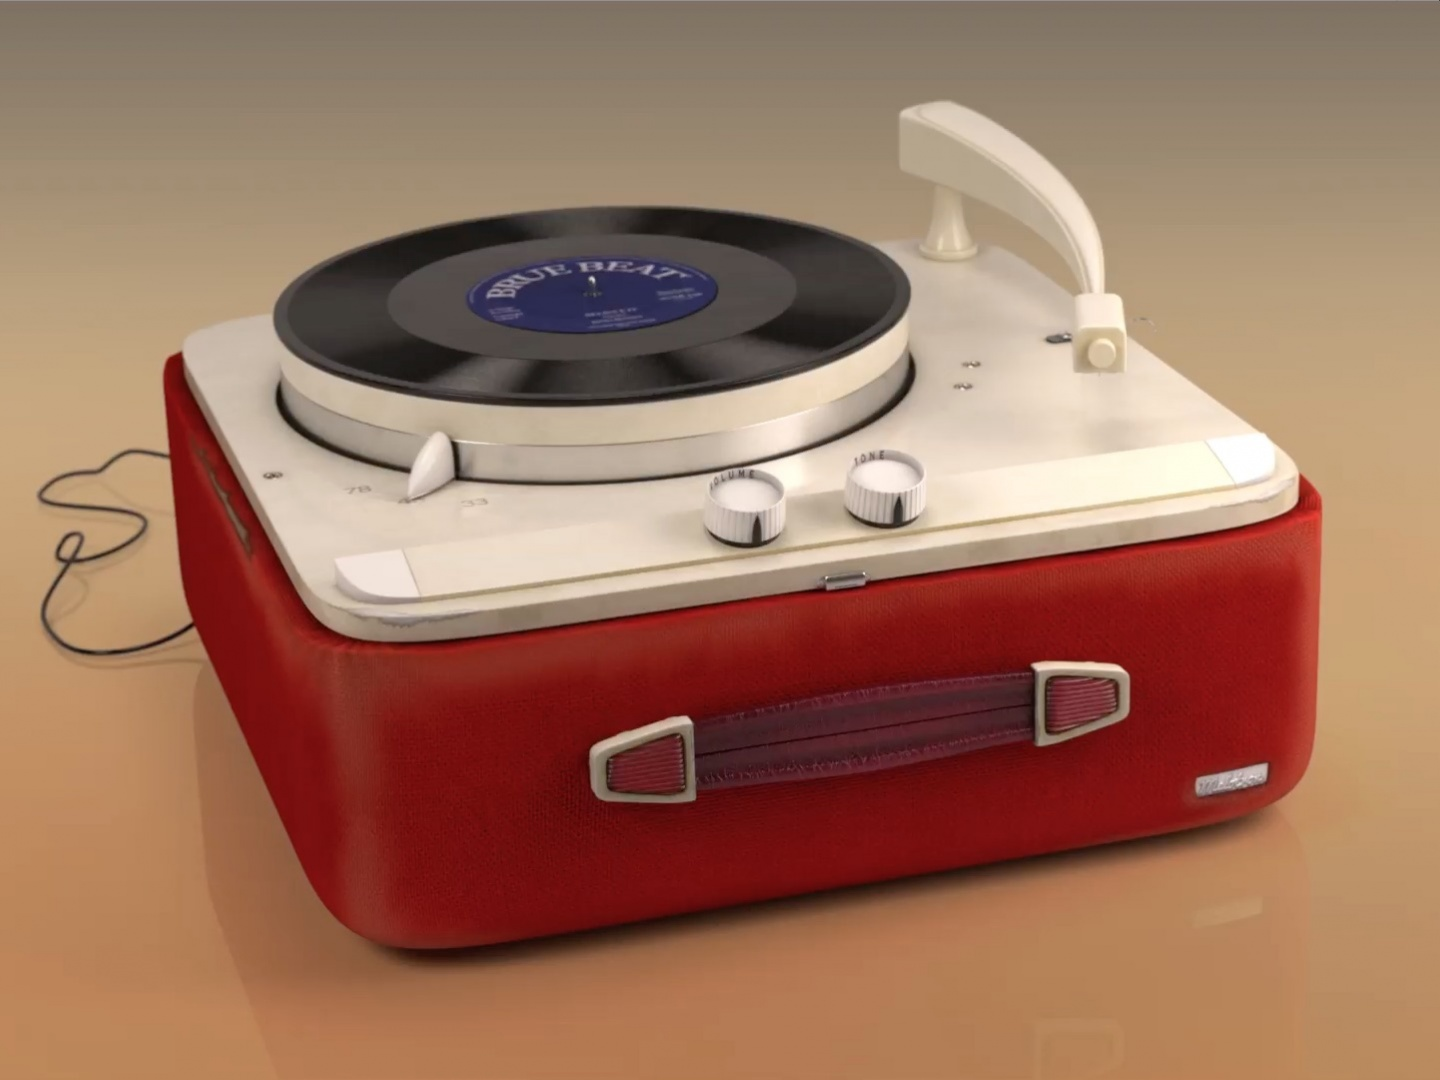 The Record Player with Type 2 diabetes Thumbnail